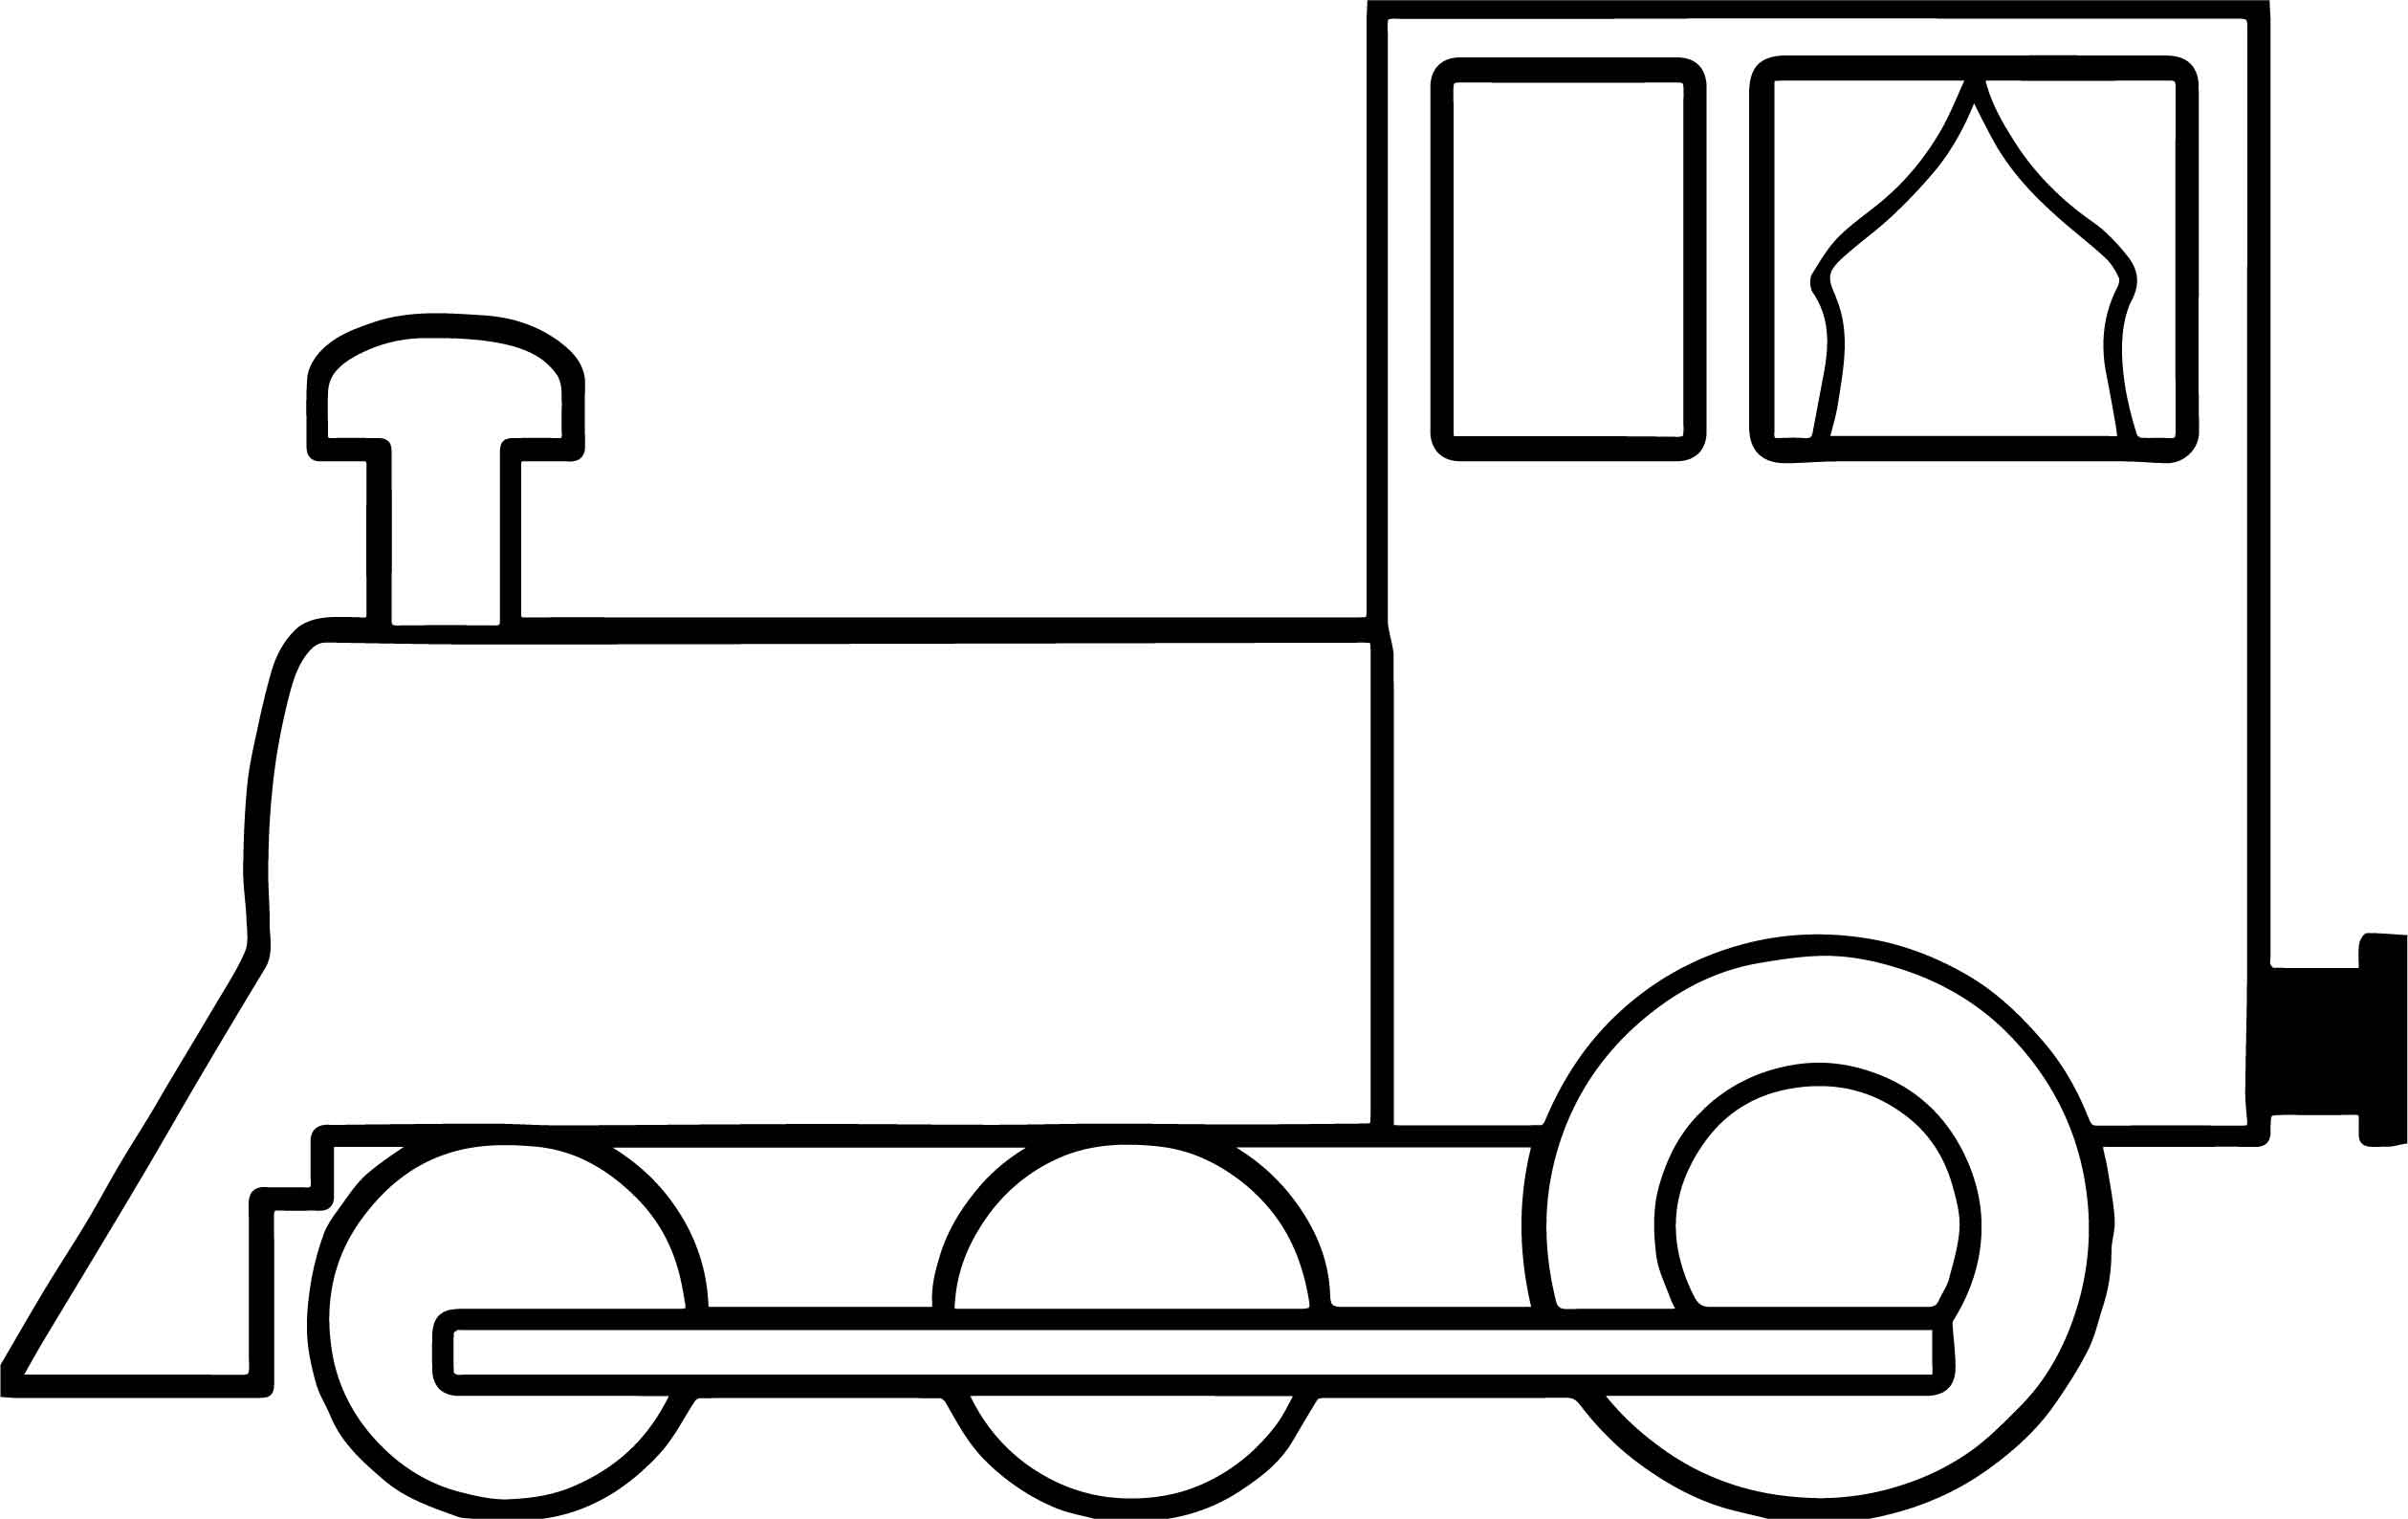 train coloring image train with two carriages coloring page free printable coloring train image